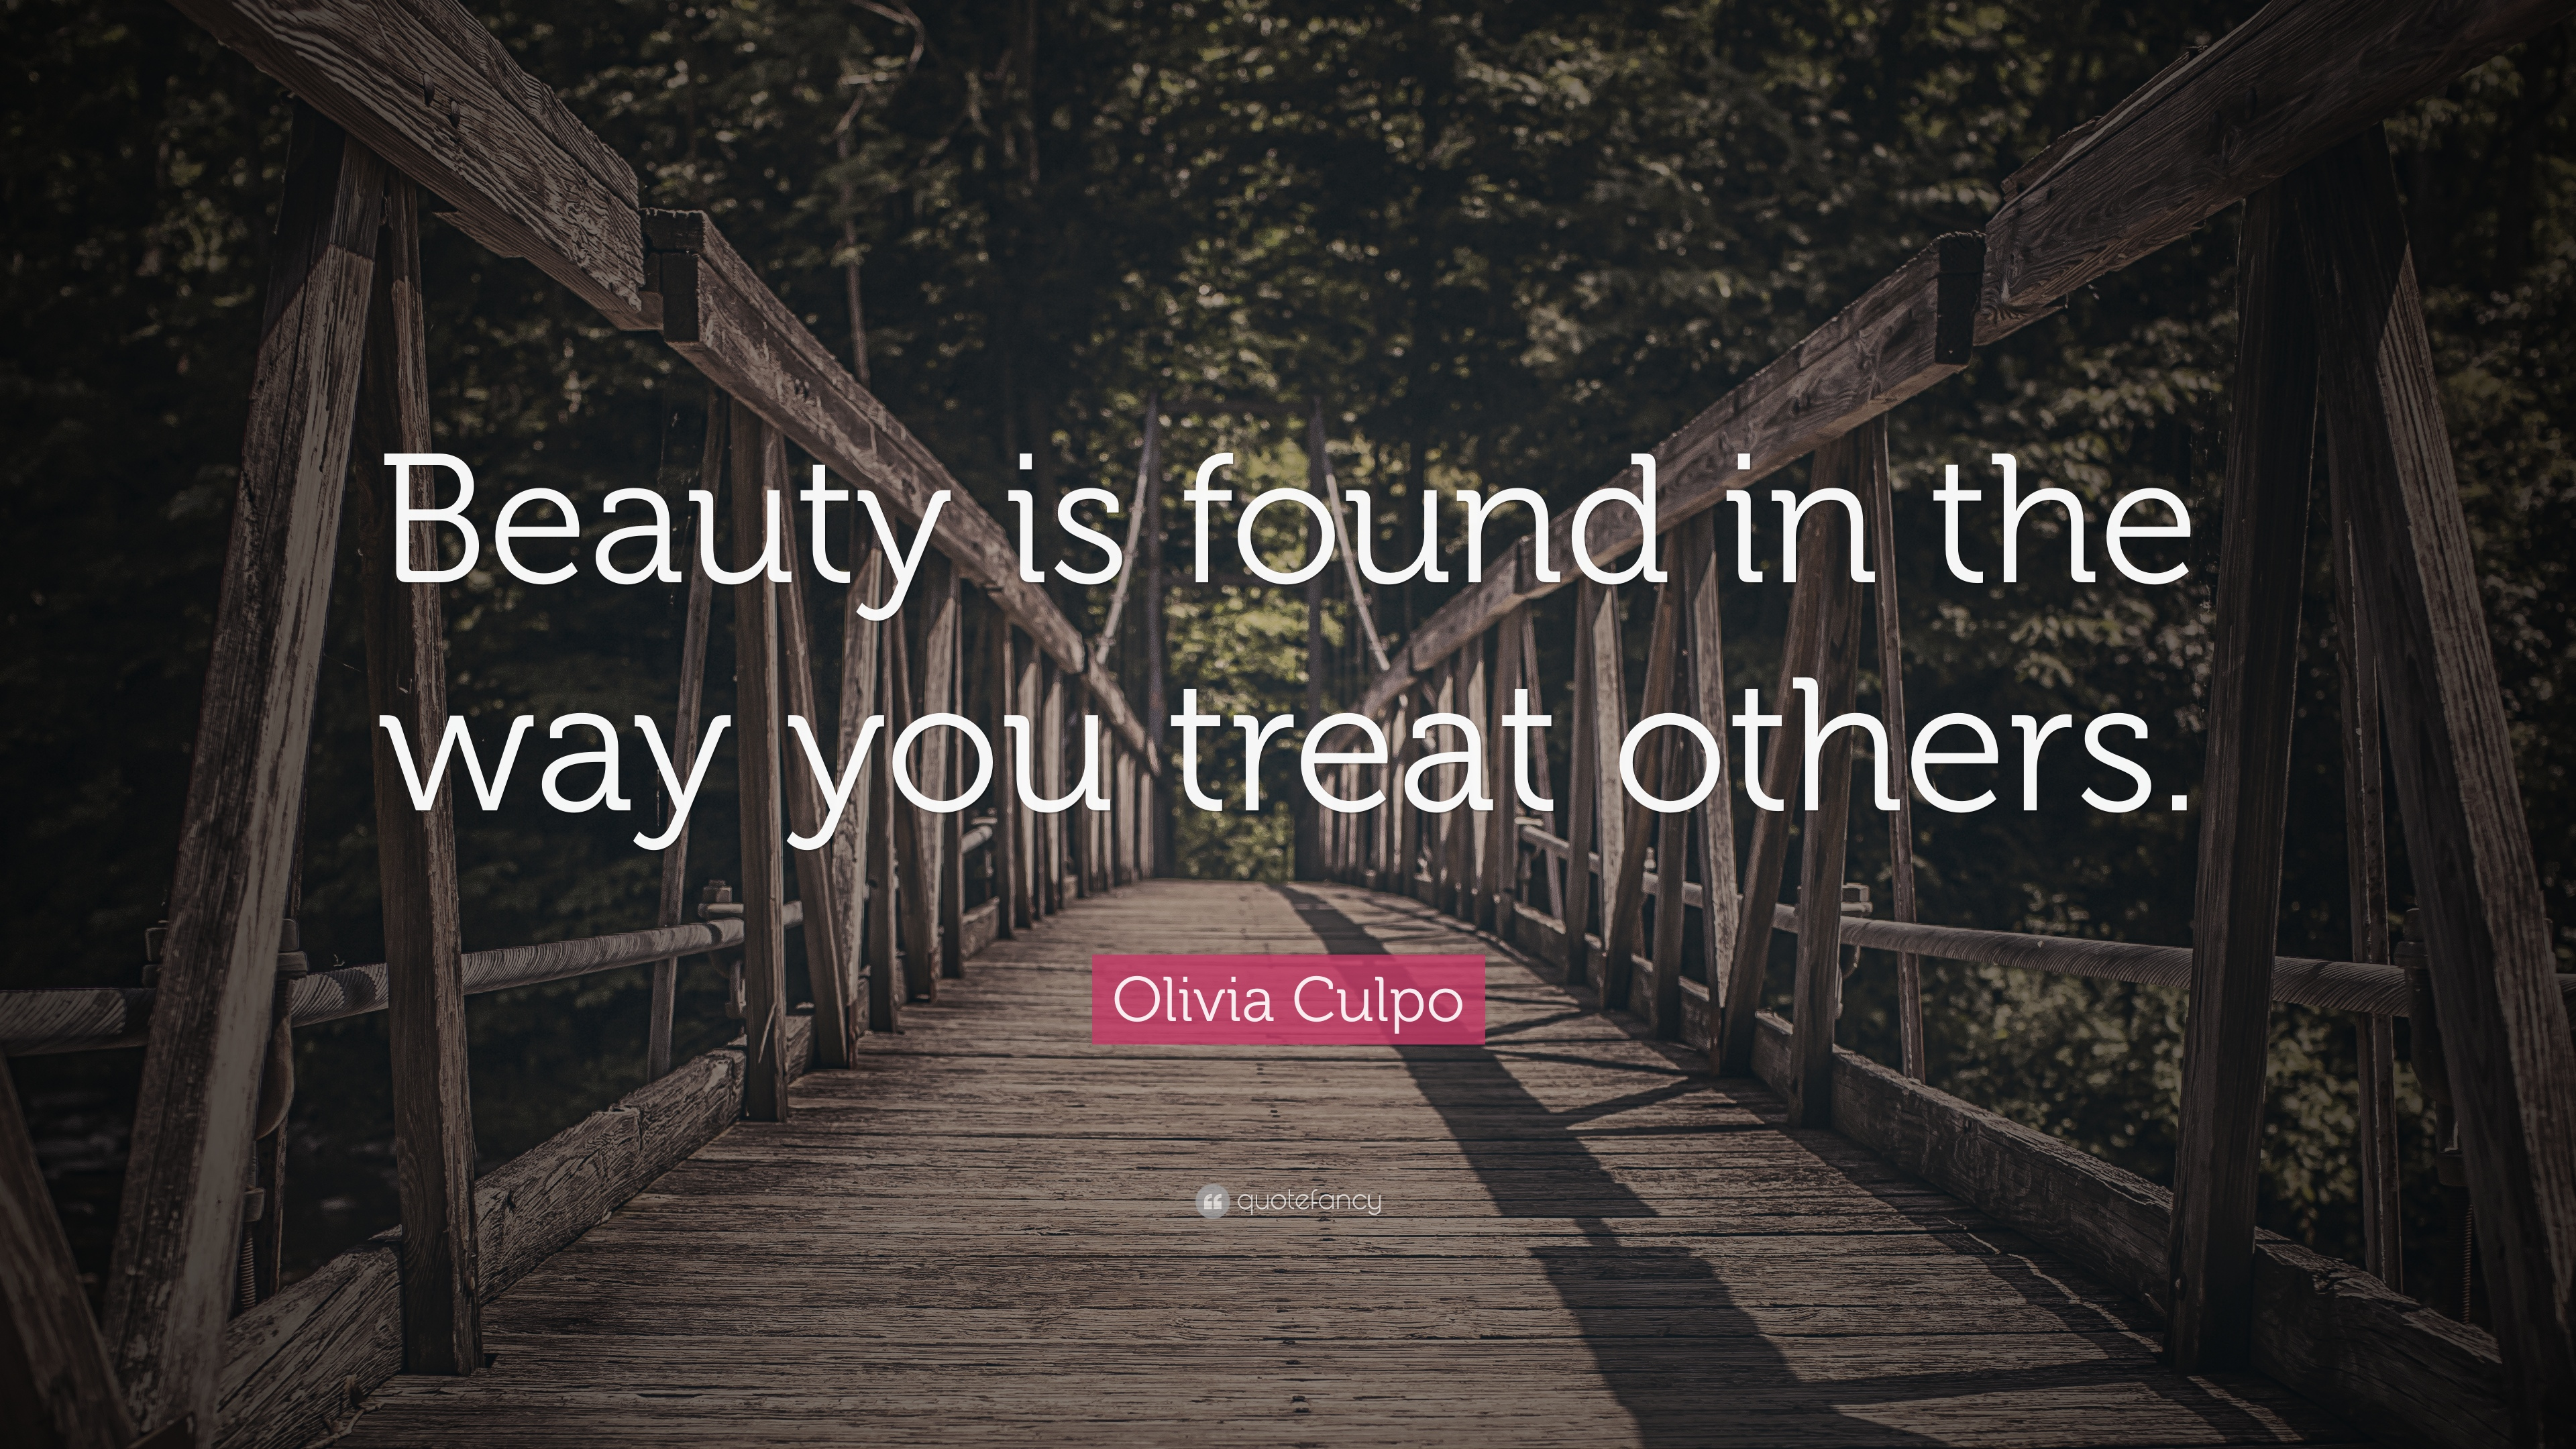 Olivia Culpo Quote Beauty Is Found In The Way You Treat Others